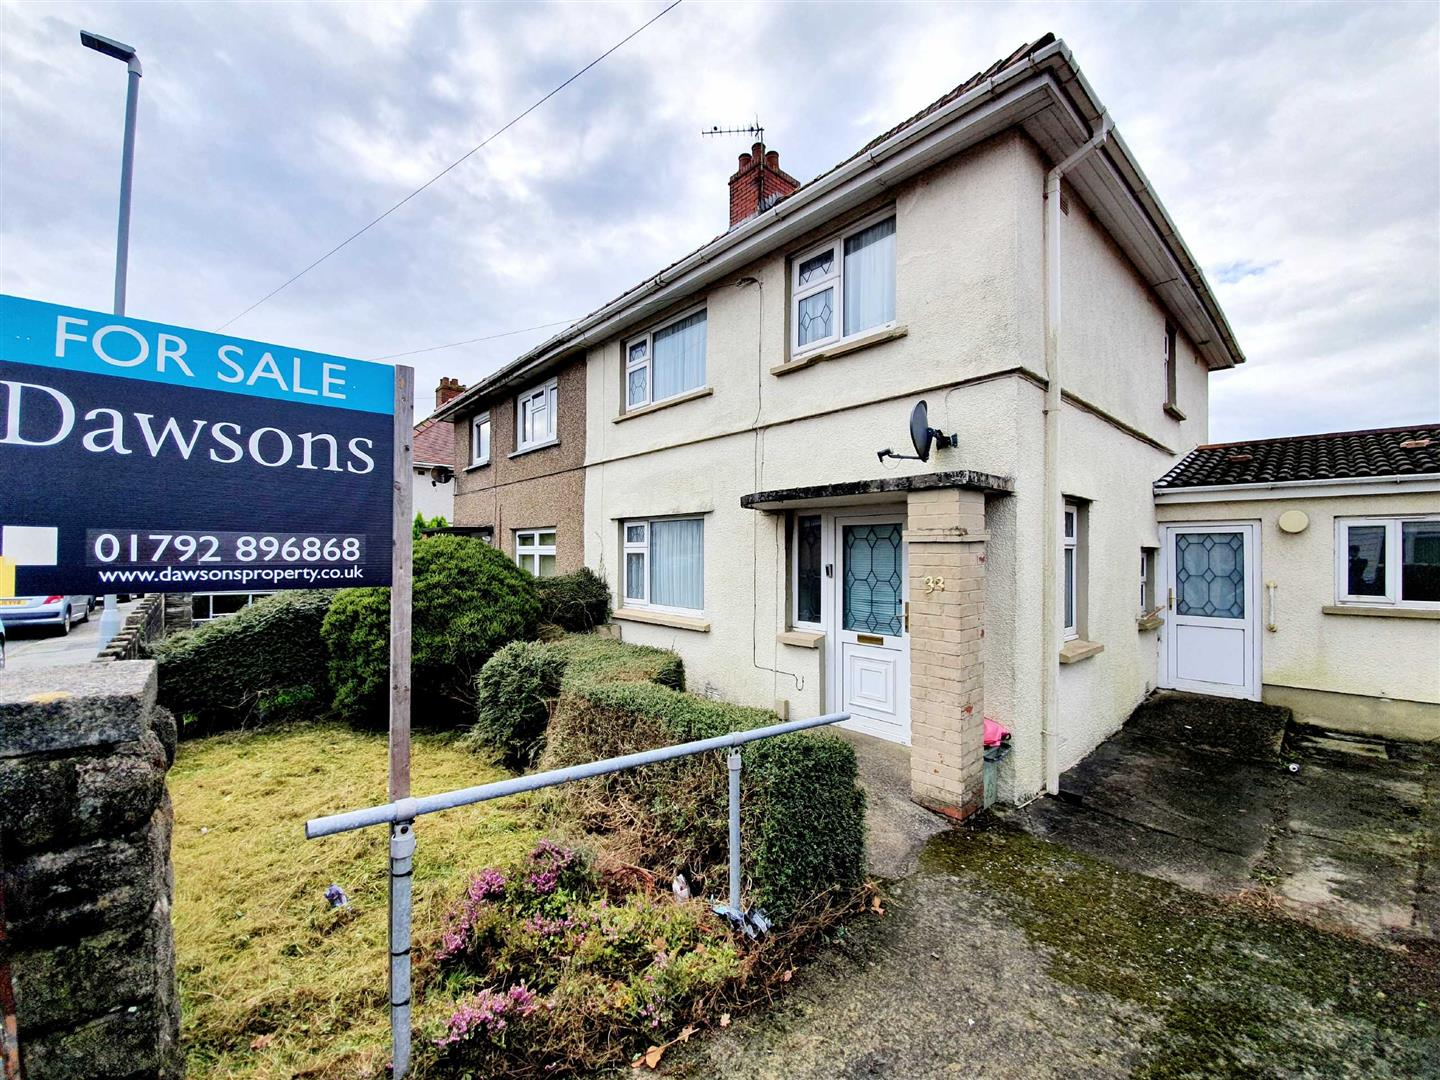 Gower View Road, Gorseinon, SWANSEA, SA4 4YU